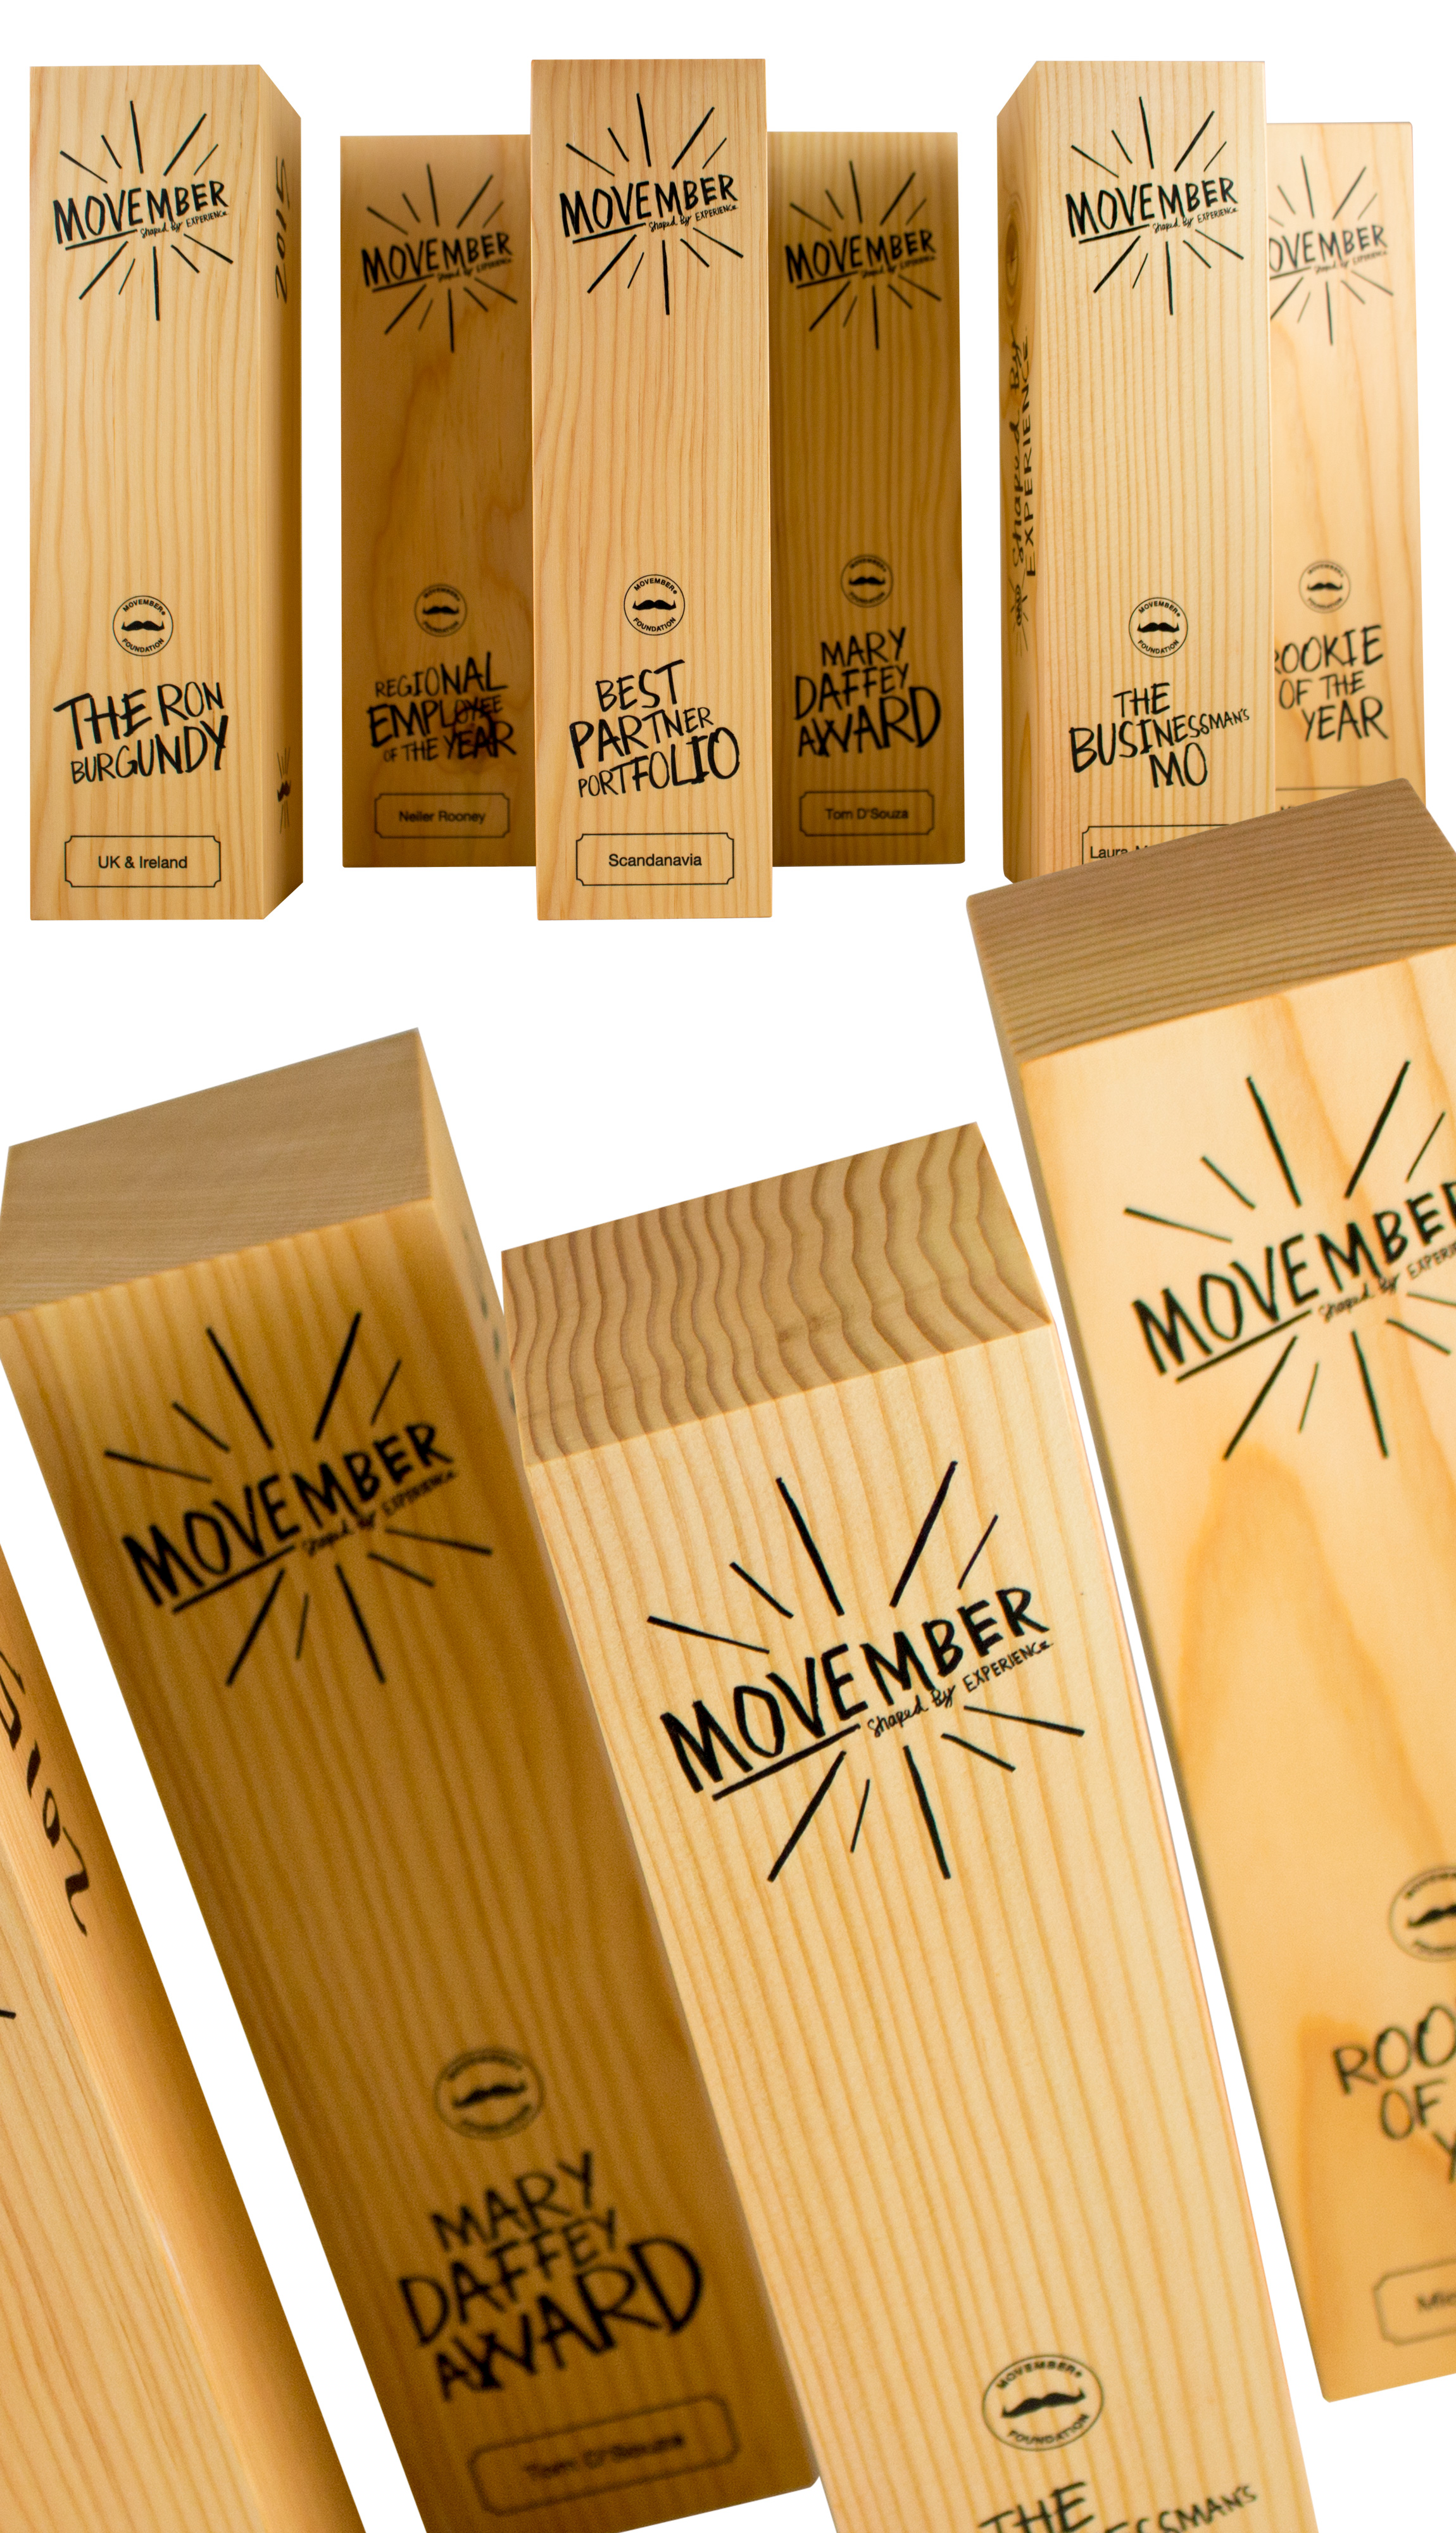 Movember simple and fresh awards